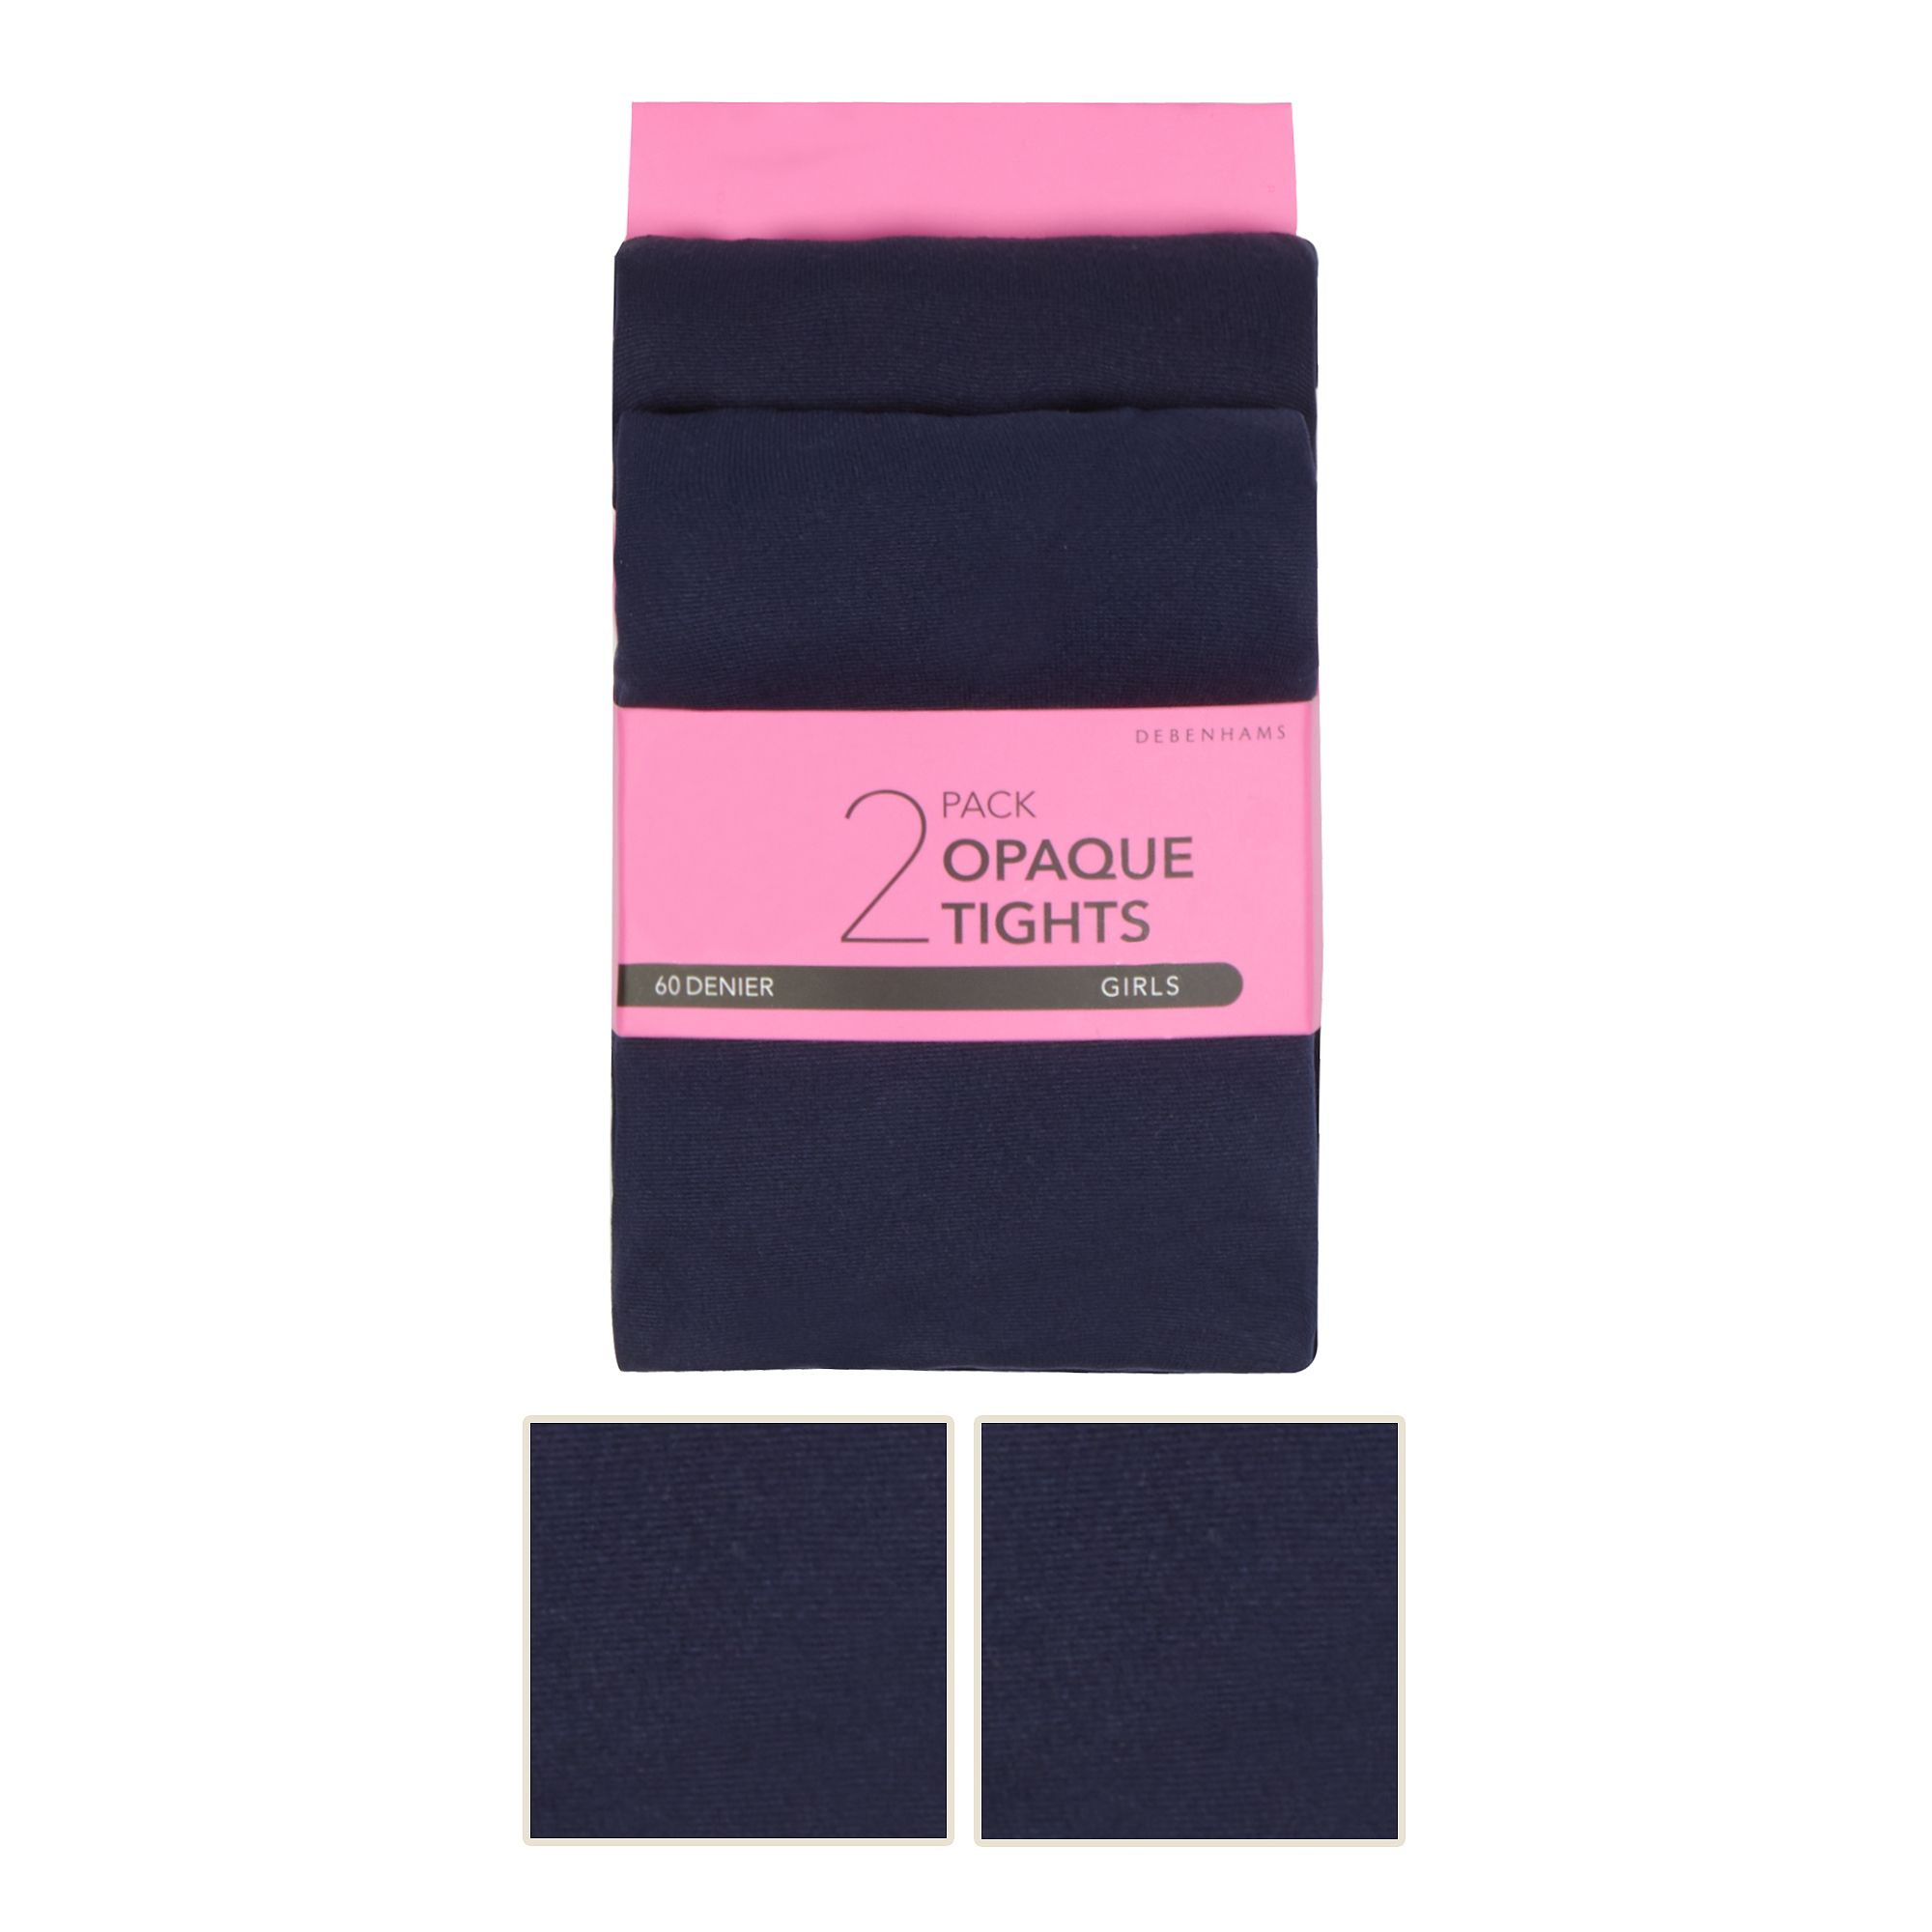 8c6da3f07eb Responsive image. FREE Standard Delivery on orders over £45. Debenhams Kids  Girl s Pack Of Two Navy 60 Denier Tights